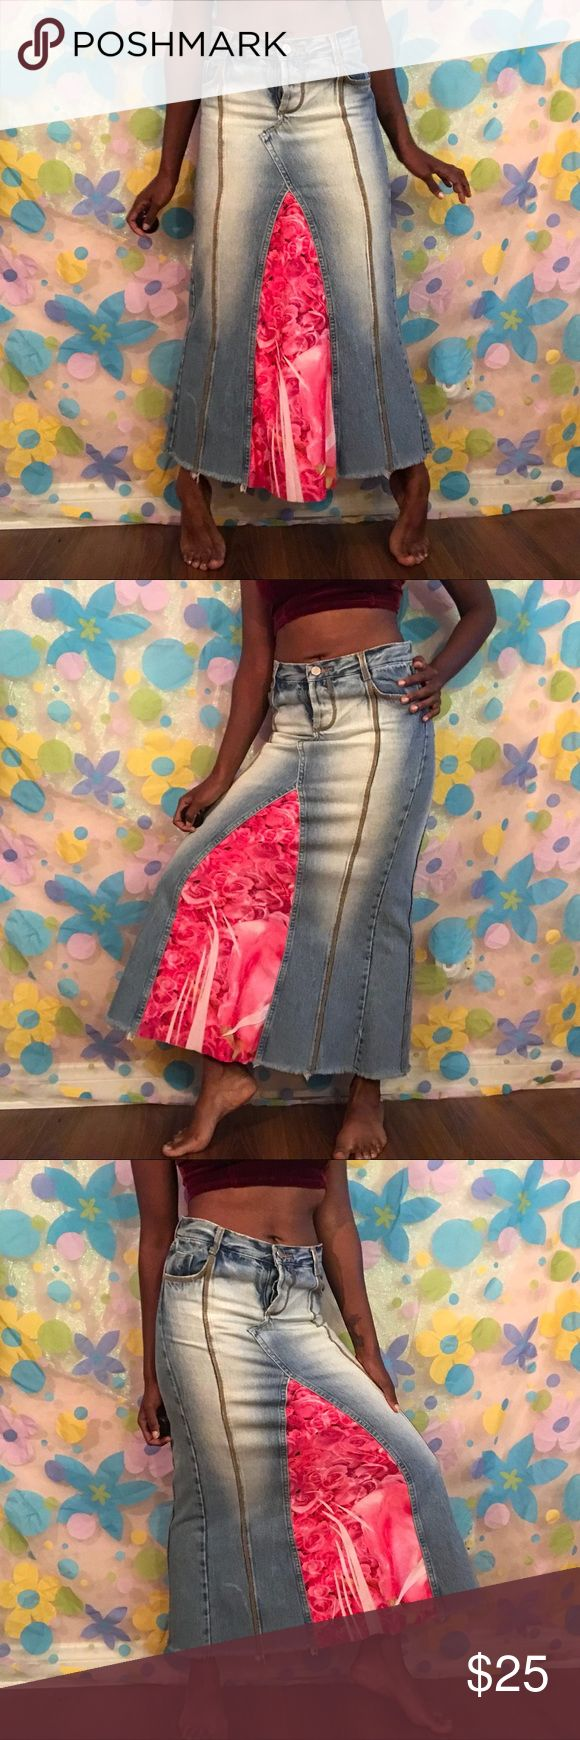 Kosiuko denim maxi skirt need buttons small 3/4 Found this @kosiukooficial skirt! Long jean skirt with soft material in the middle.  NEEDS NEW BUTTONS!! Size small fits like a 3/4.  ! #kosiuko #skirt #denim #skirt #music #sing #funky #denimskirt #maxiskirt #roses #floral #flowers #00s #y2k #forsale #depop #poshmark #ebay #vinted #smallbusiness #blackowned #blackgirlmagic #losangeles #california #burbank kosiuko Jeans